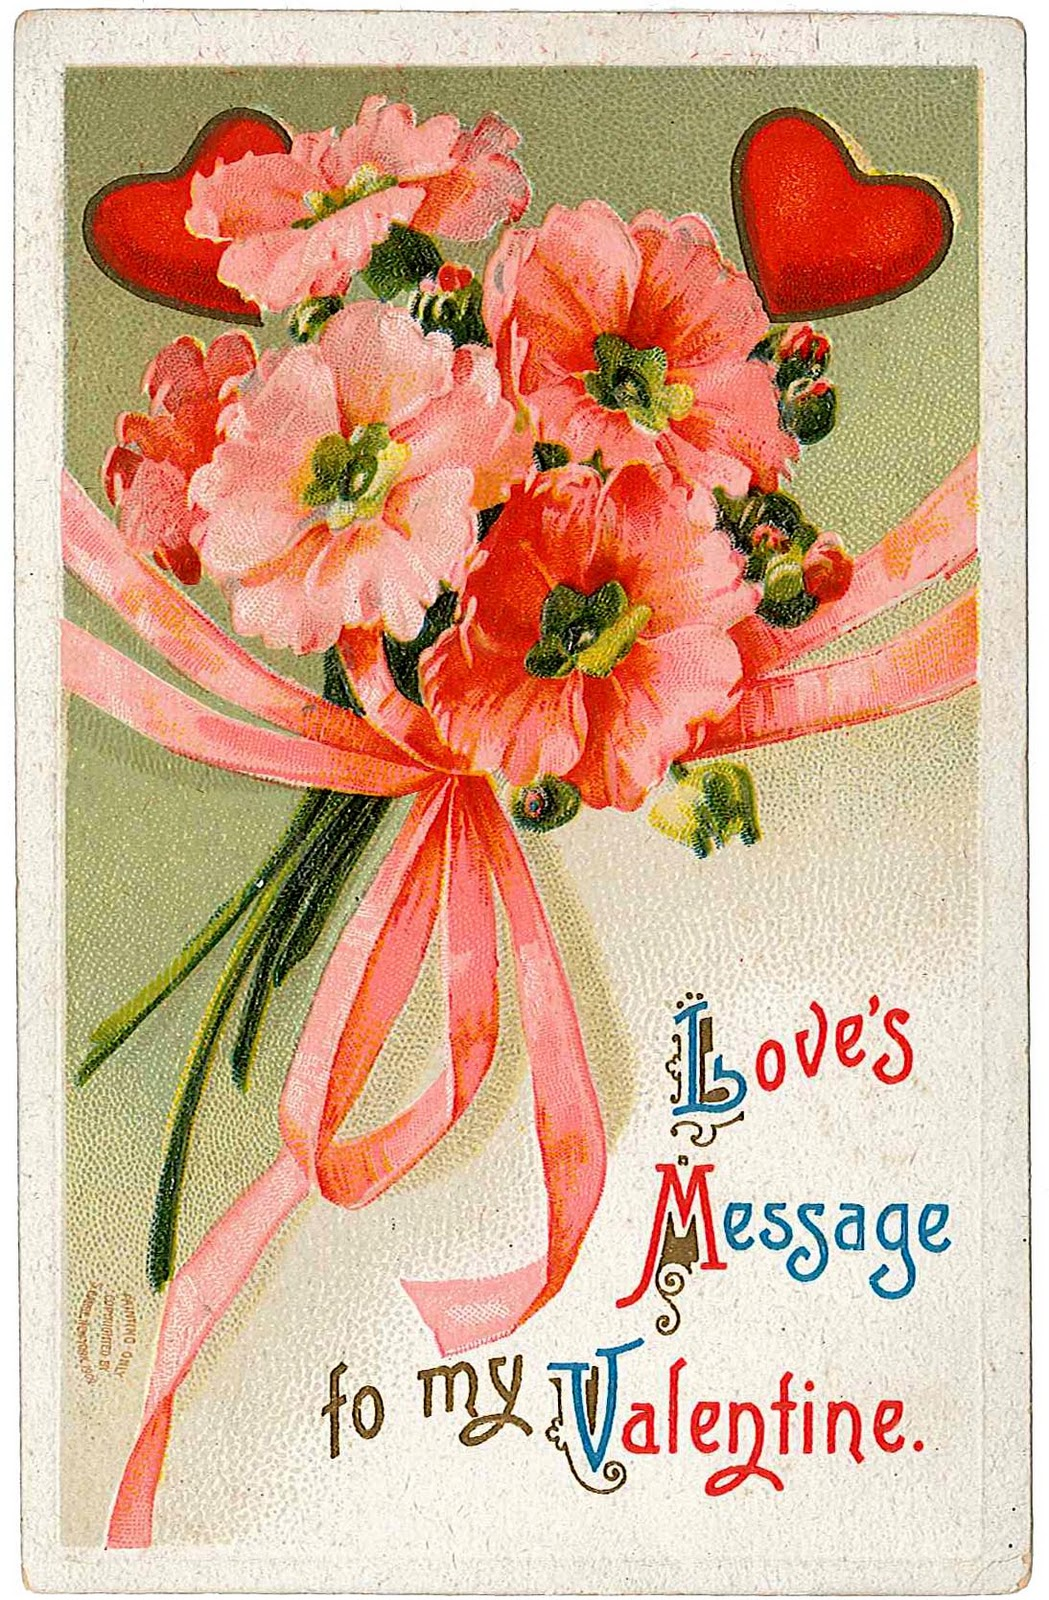 24 valentine card assortment by punch studio, victorian ephemera collection of hearts, flowers, kitty cats, roses, cupid, valentine's. Vintage Valentine cards ~ vintage everyday